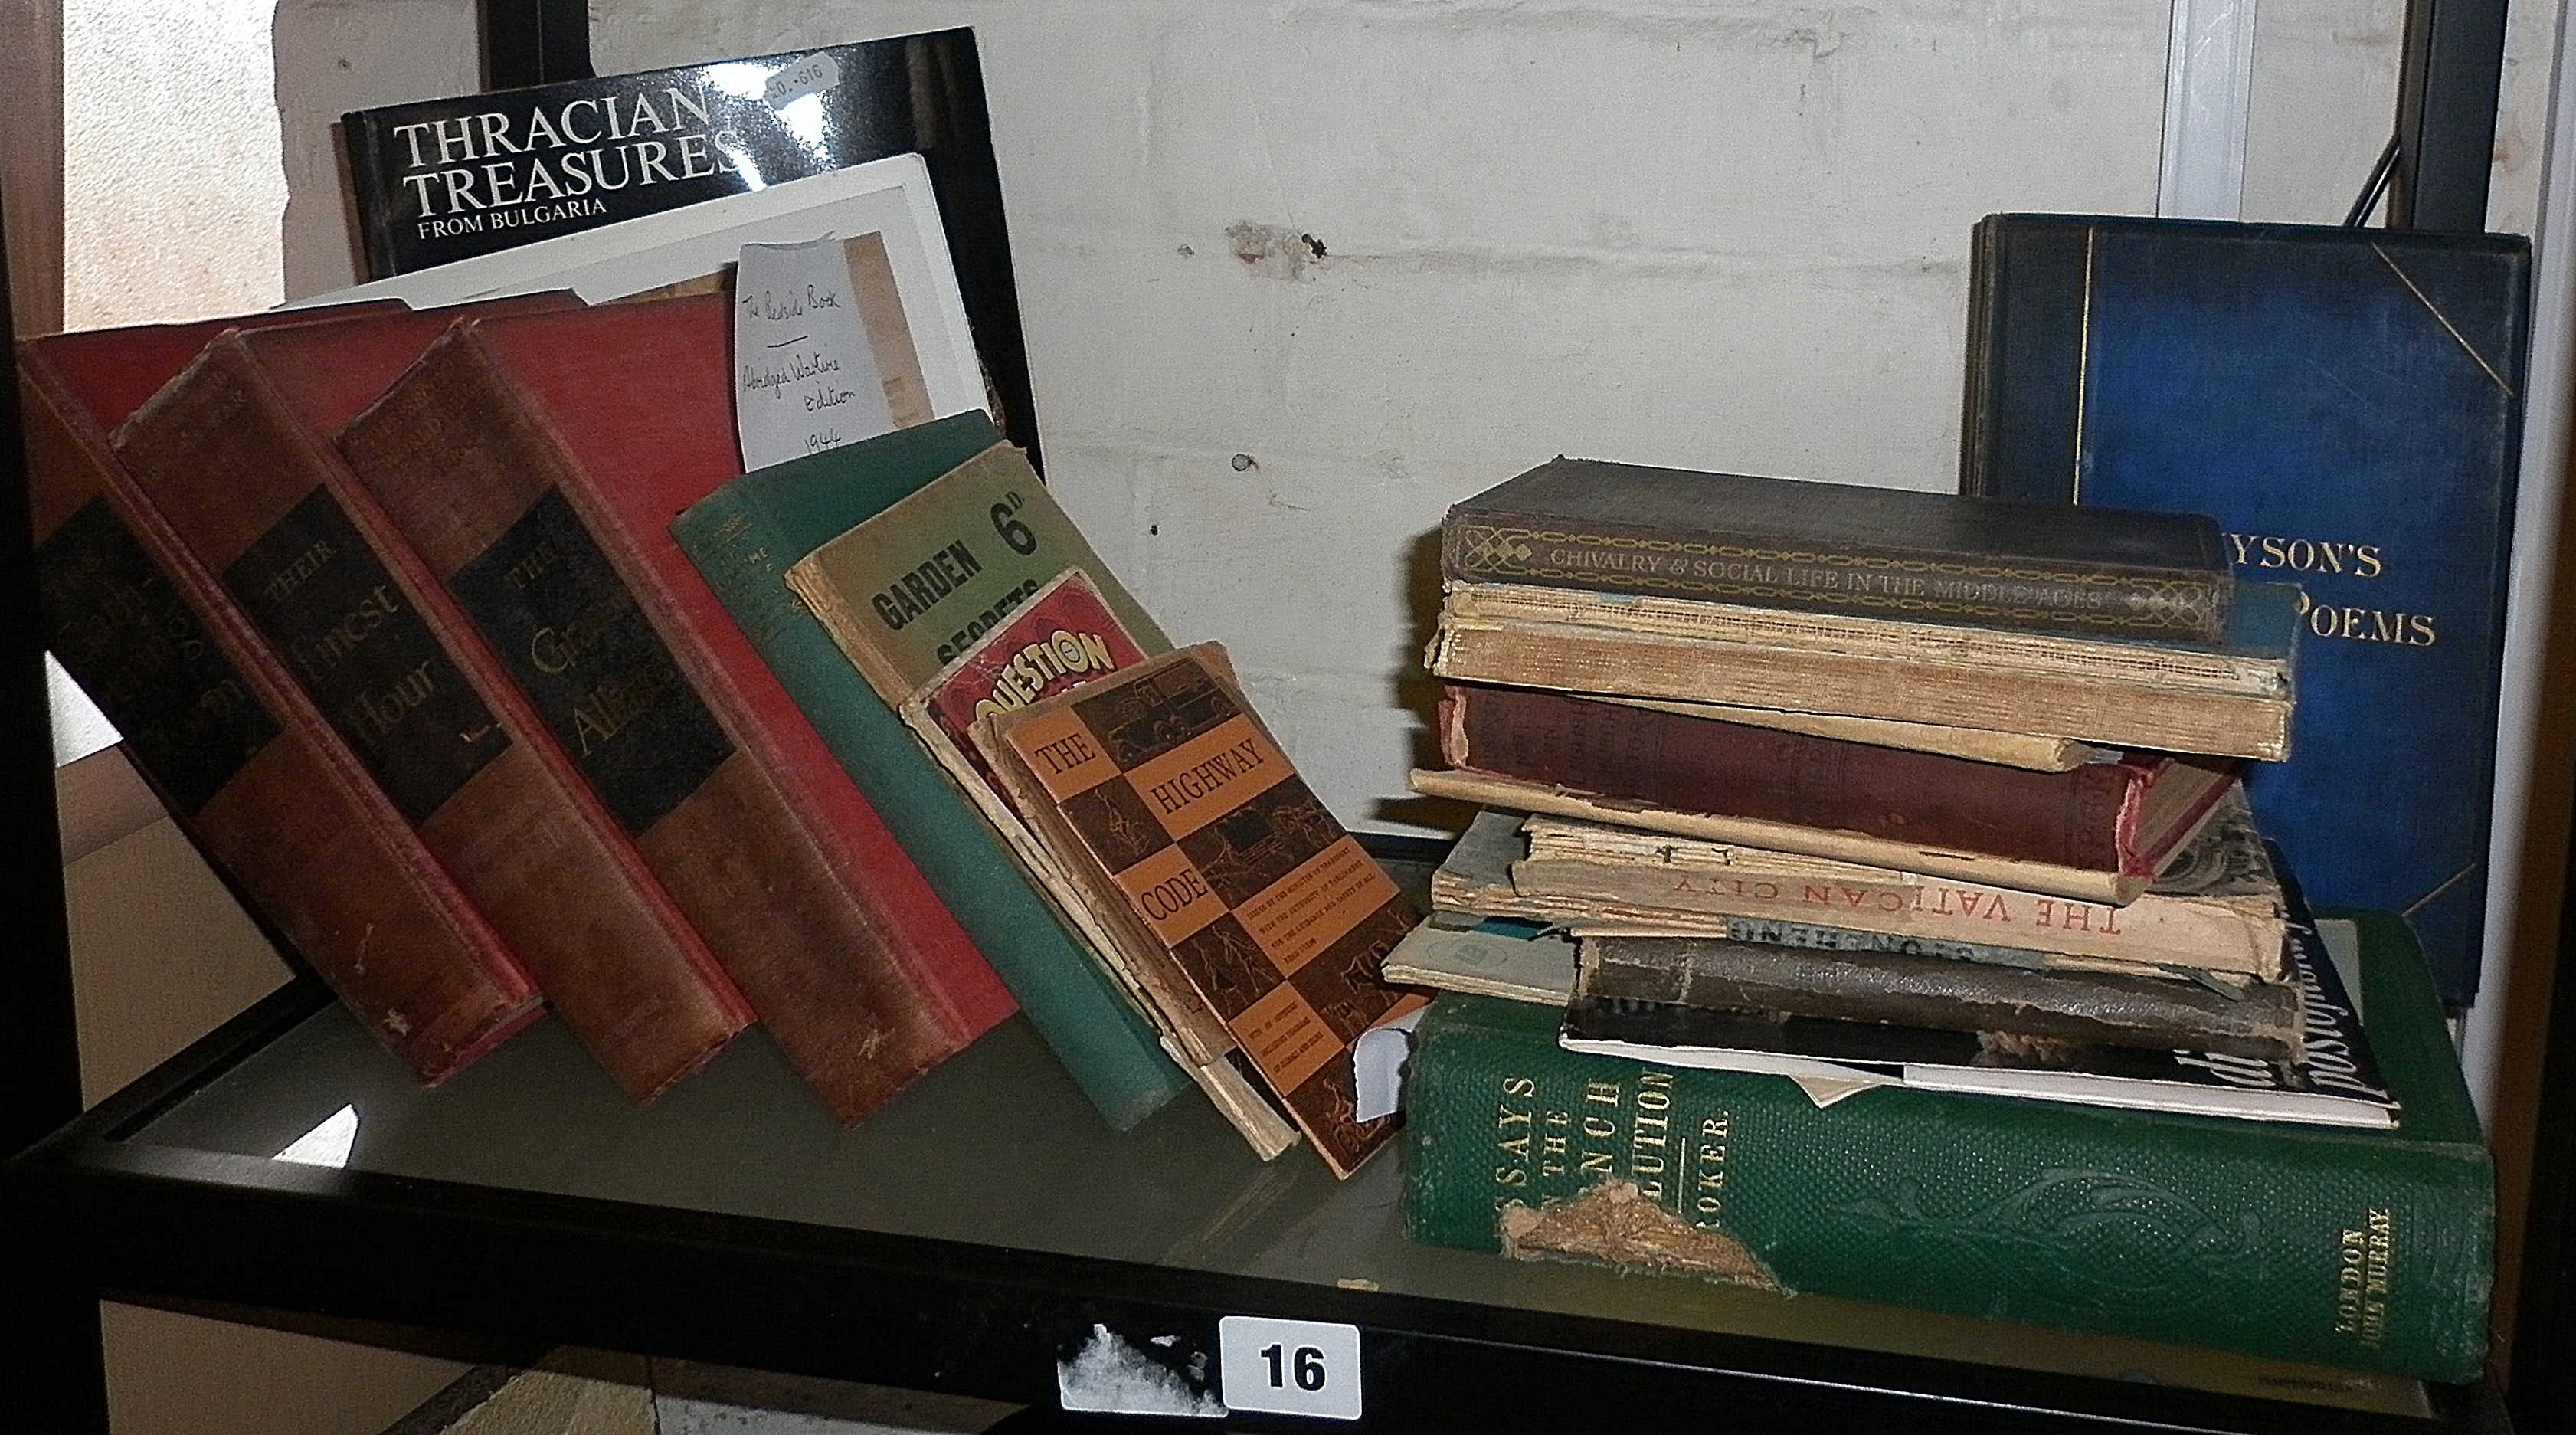 Crokers 'Essays on the French Revolution', 1857, pub. John Murray and other books and booklets